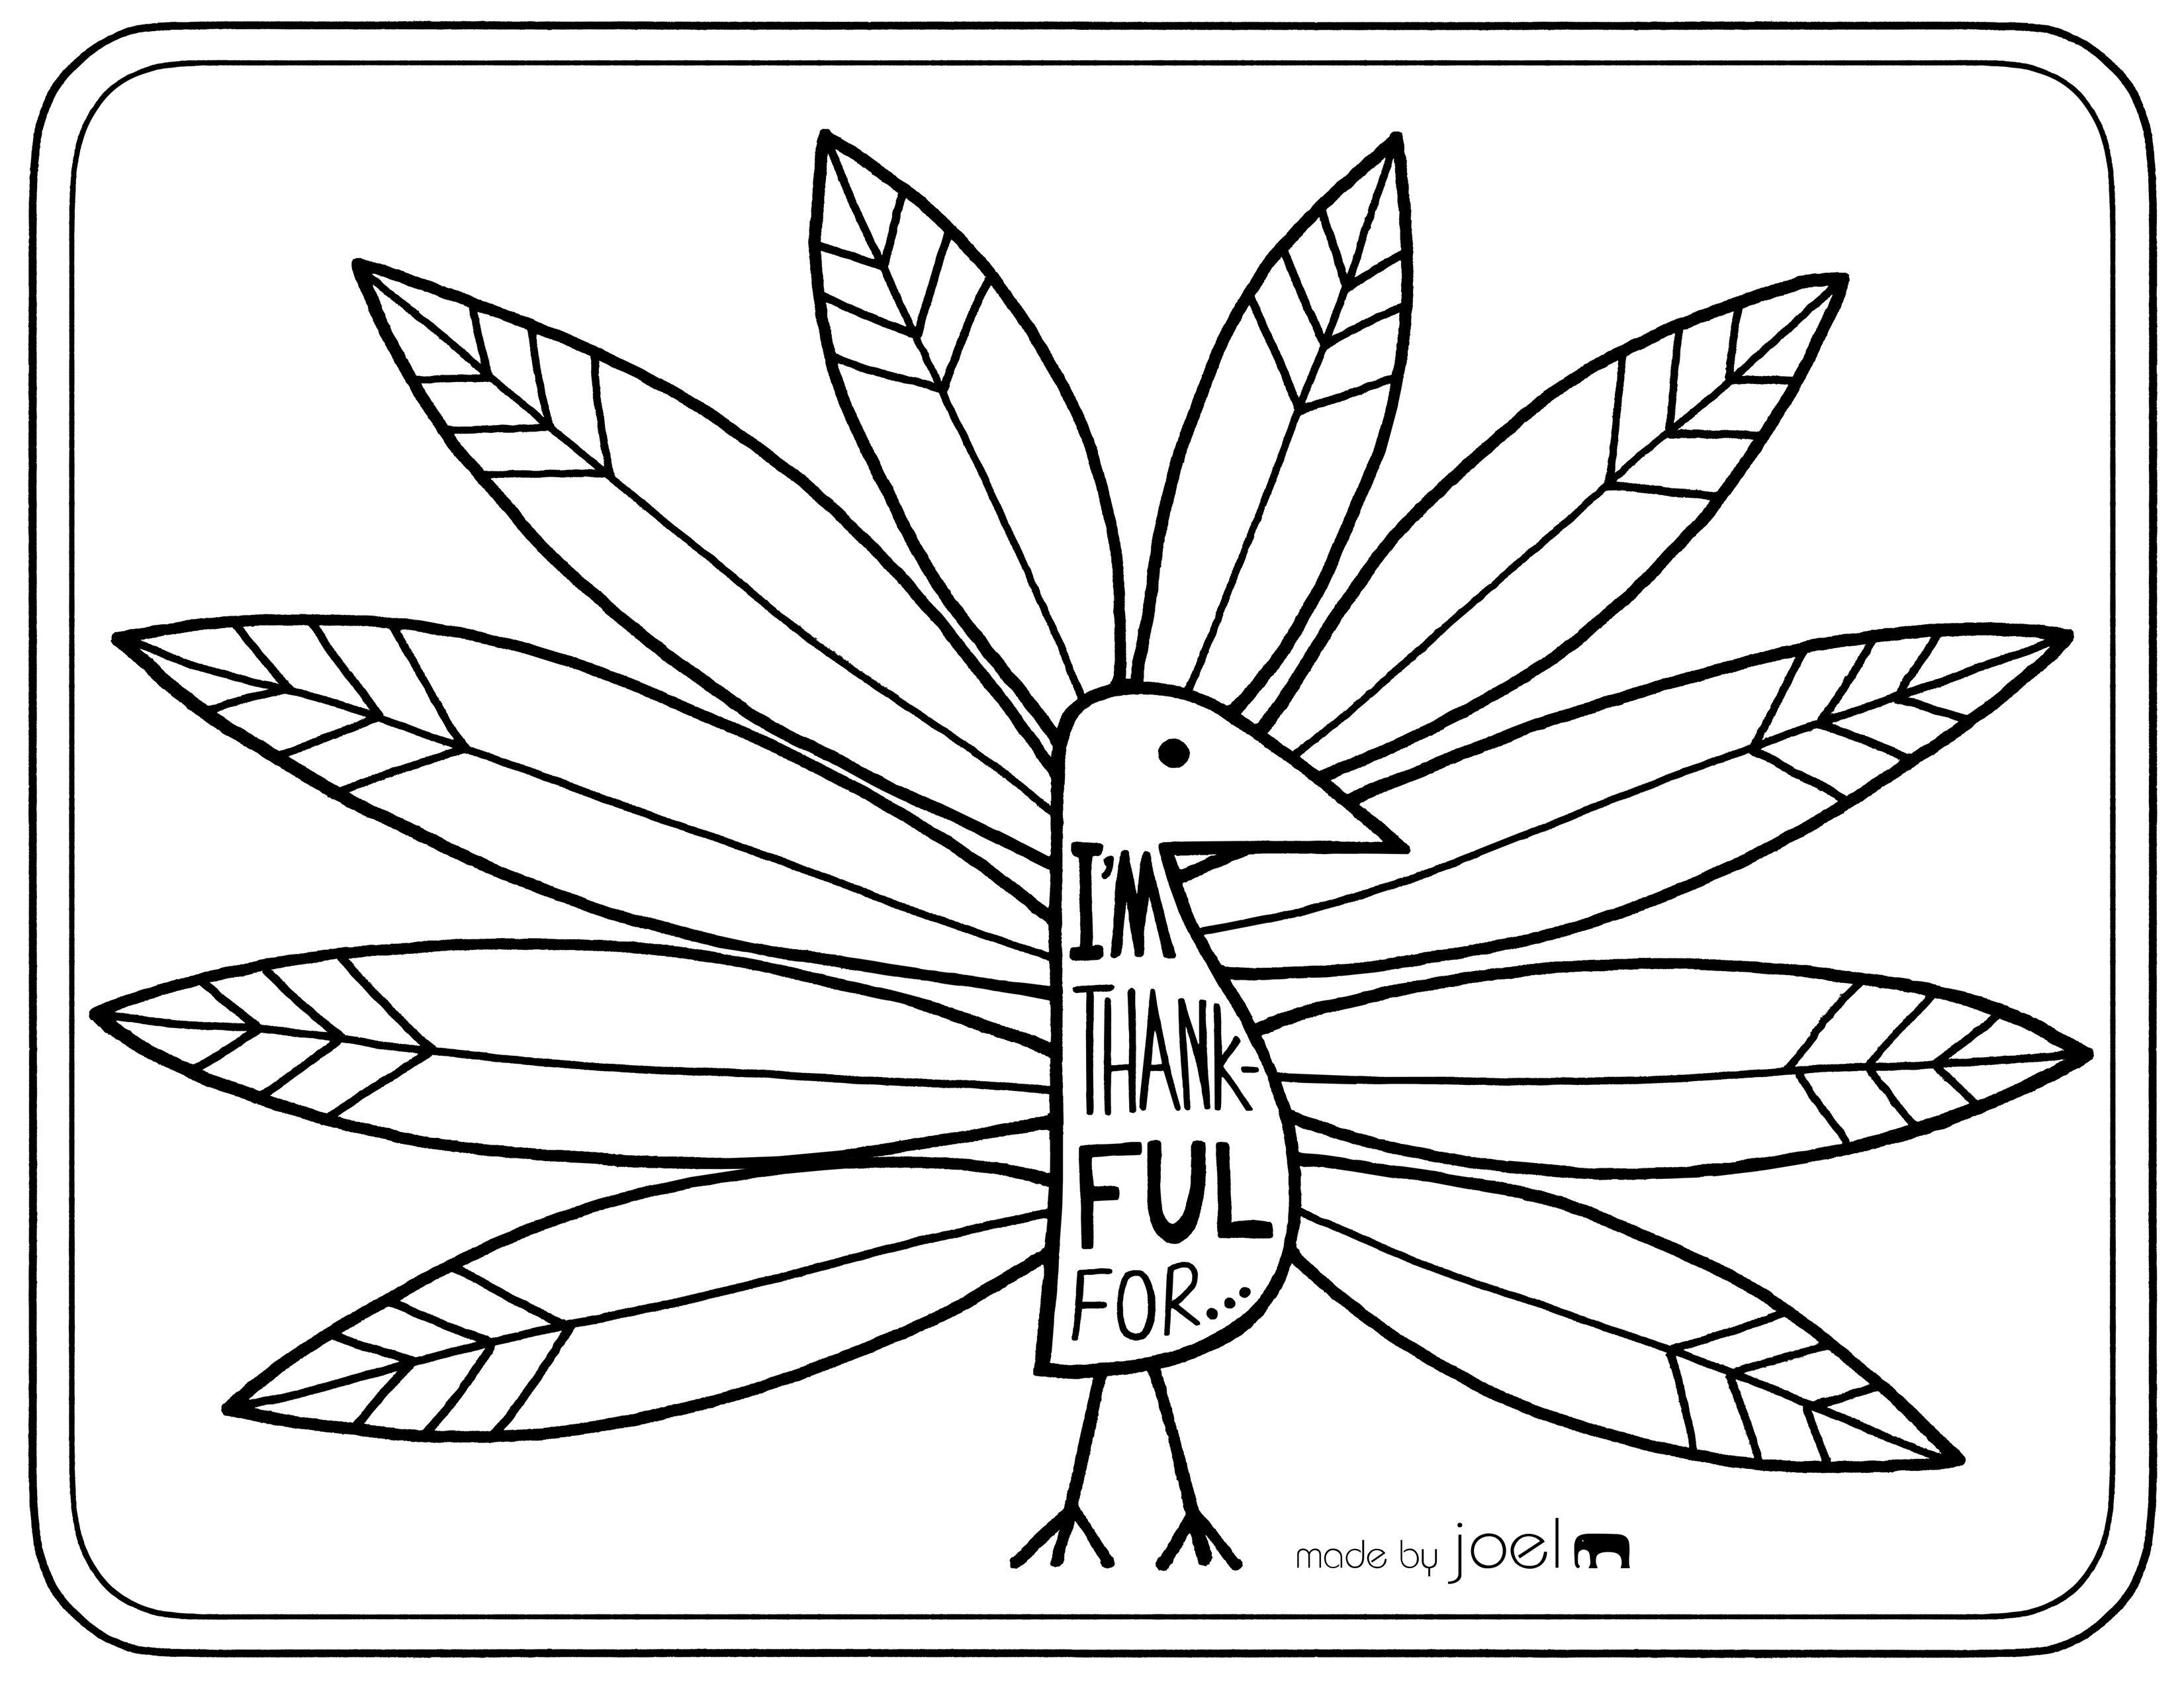 Made By Joel Printable Placemat For Giving Thanks Thanksgivingplacematspreschool Made B Thanksgiving Placemats Thanksgiving Printables Turkey Coloring Pages